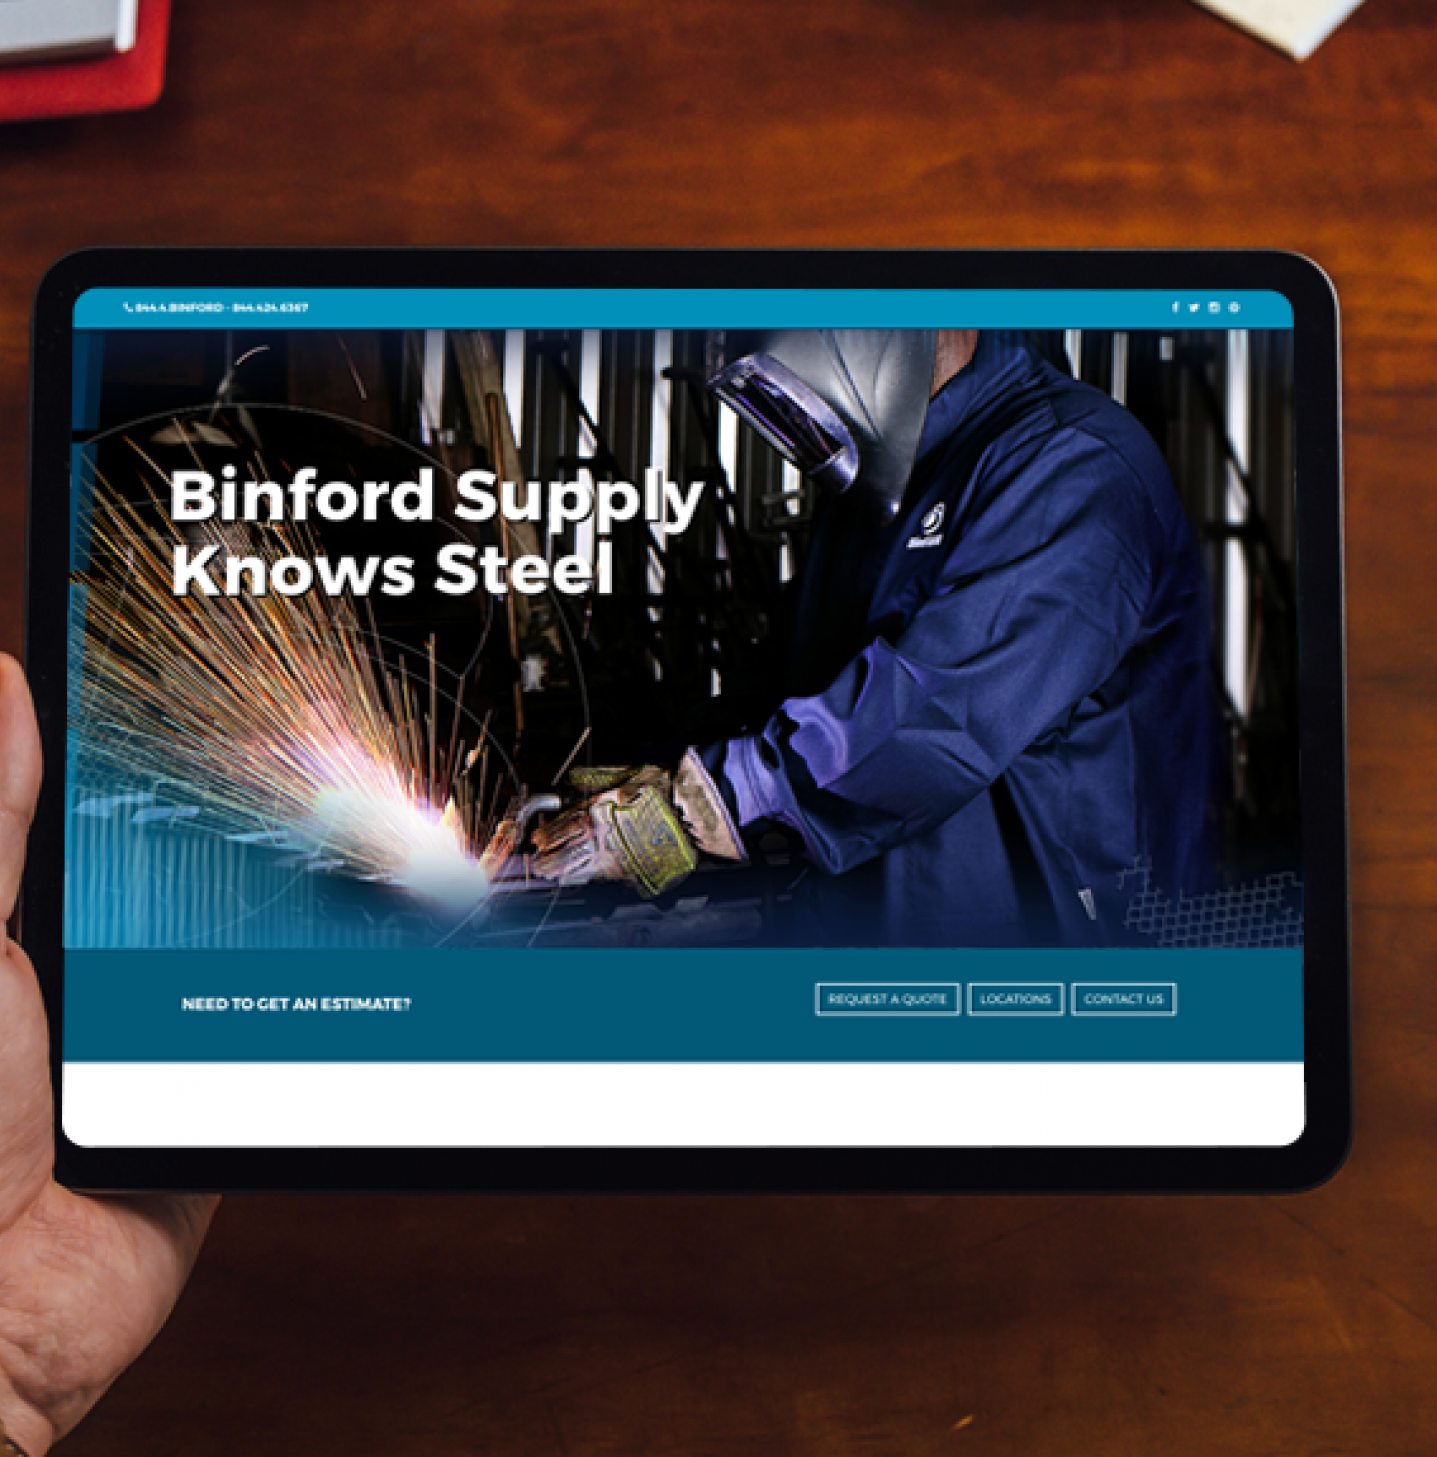 Image of Binford Fence Supply website on iPad